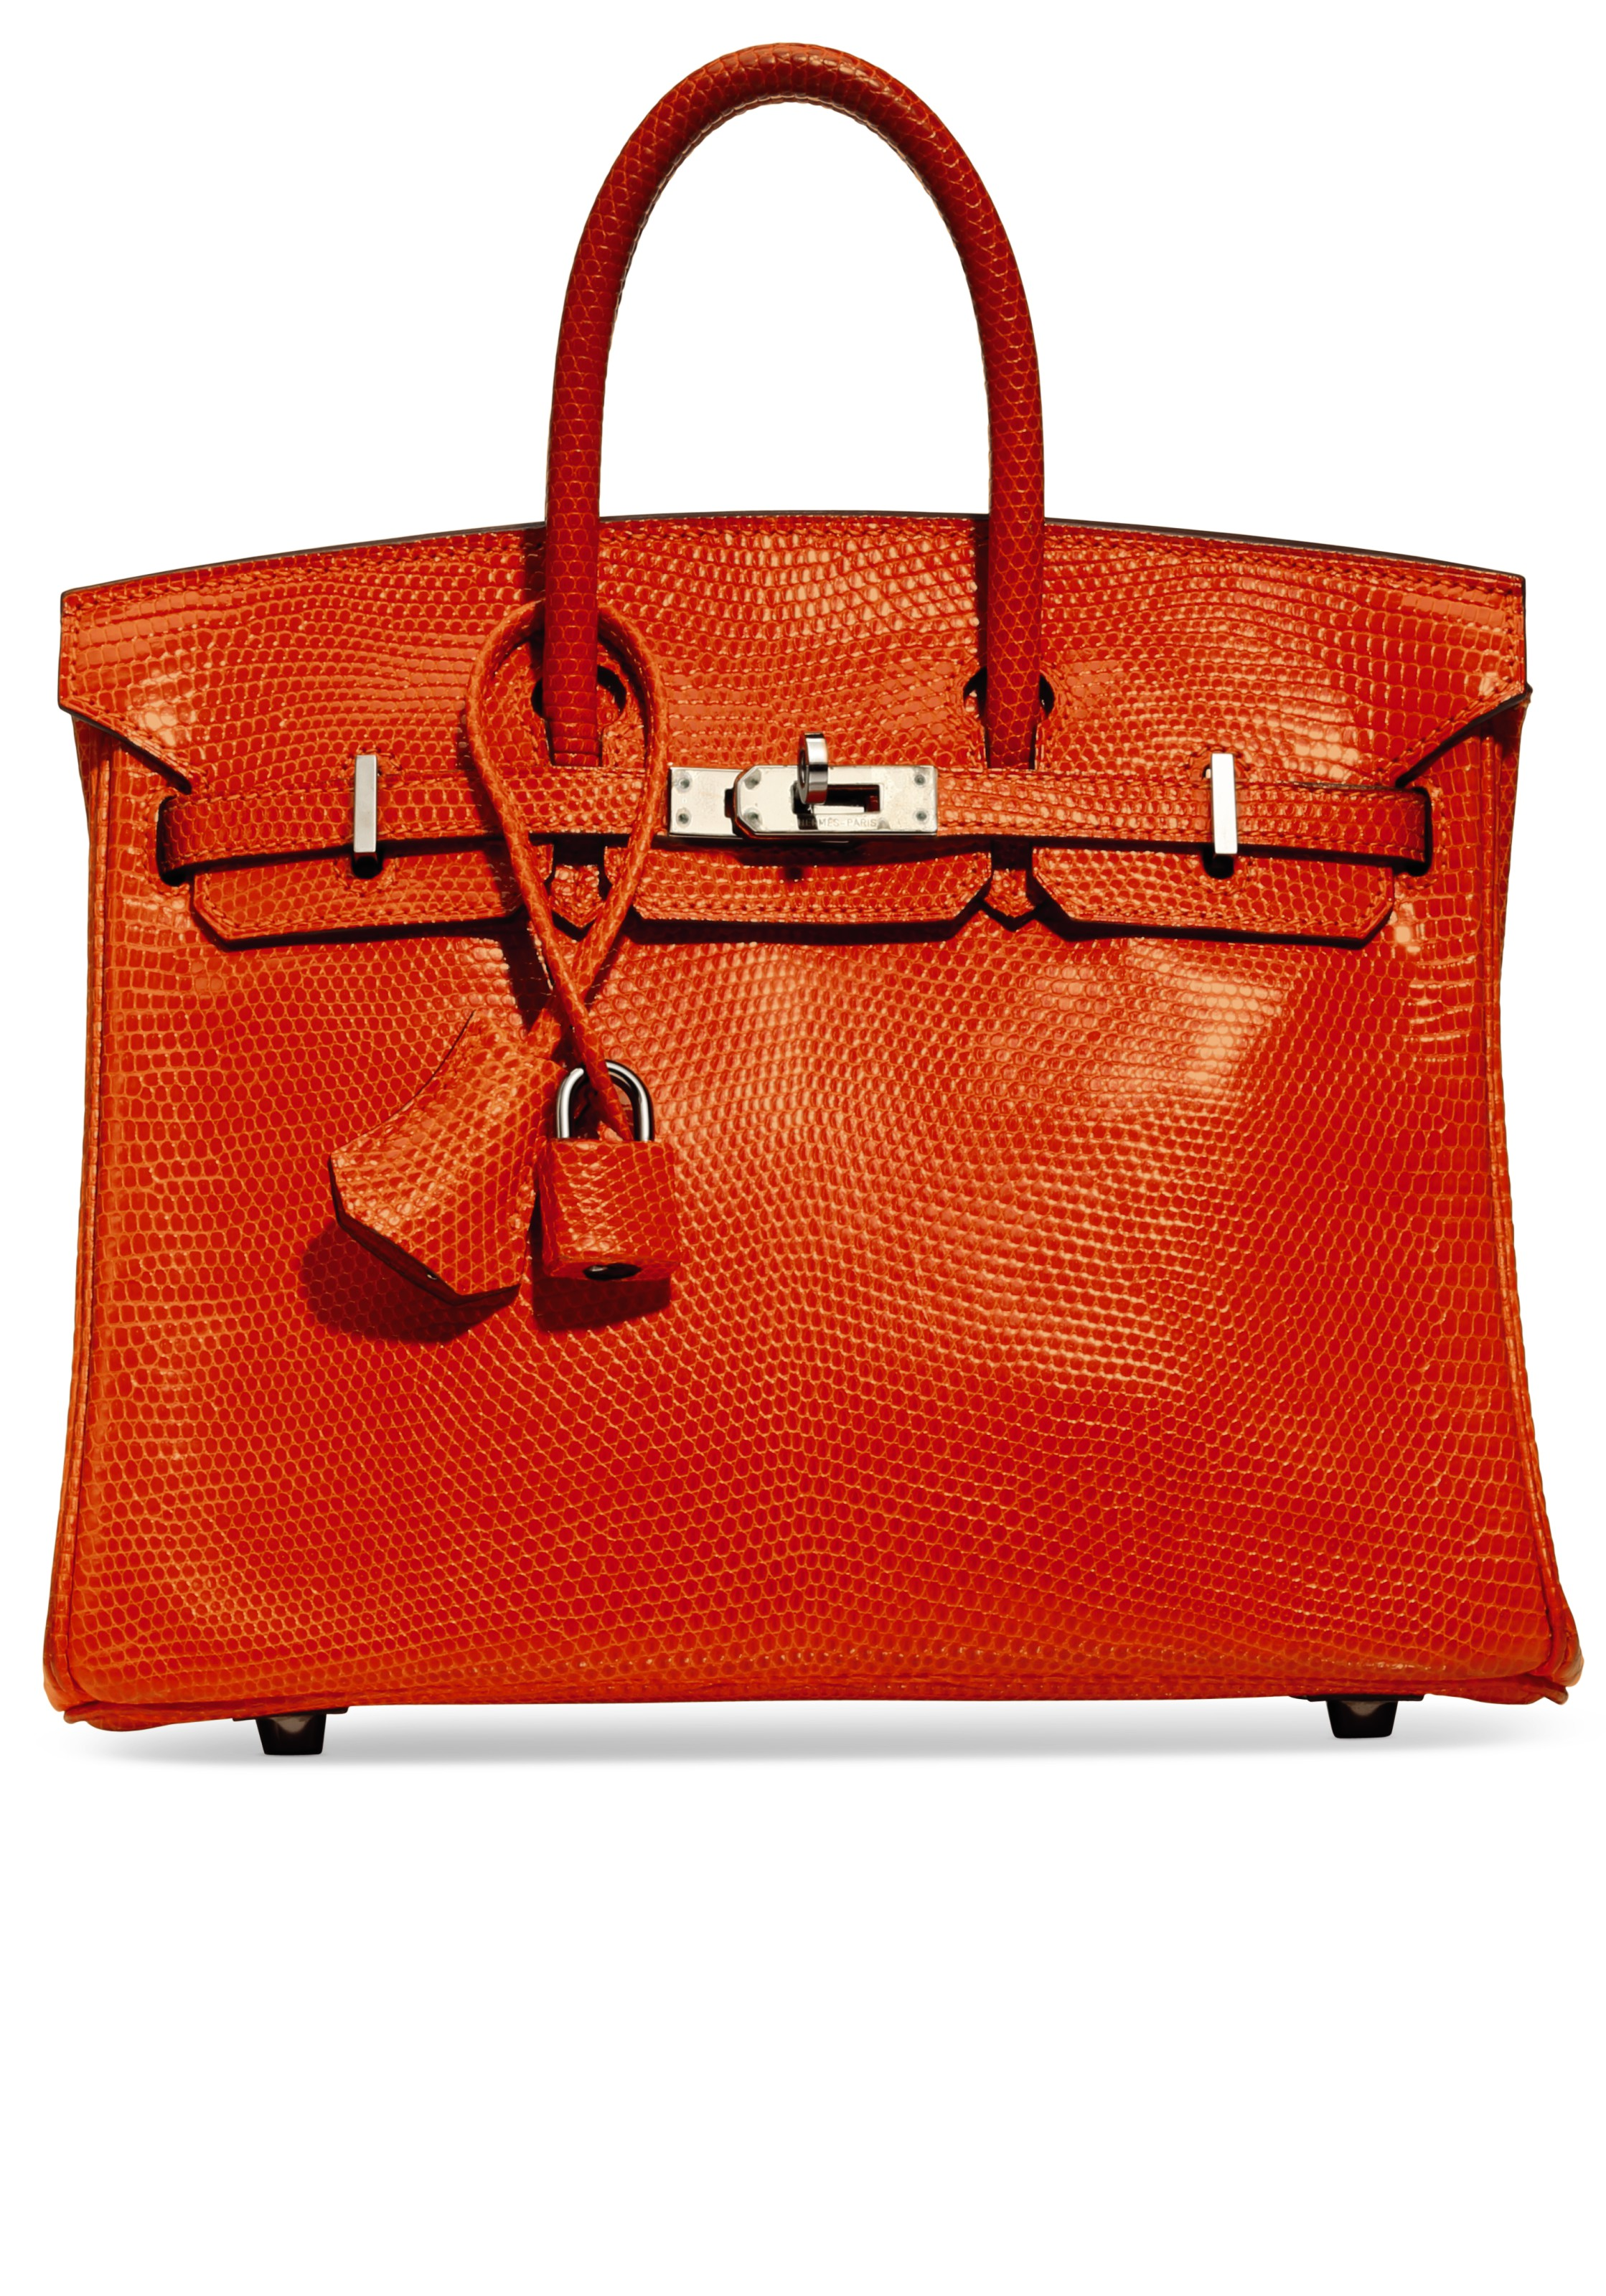 Discussion on this topic: Your New Season Leather Handbag Guide, your-new-season-leather-handbag-guide/